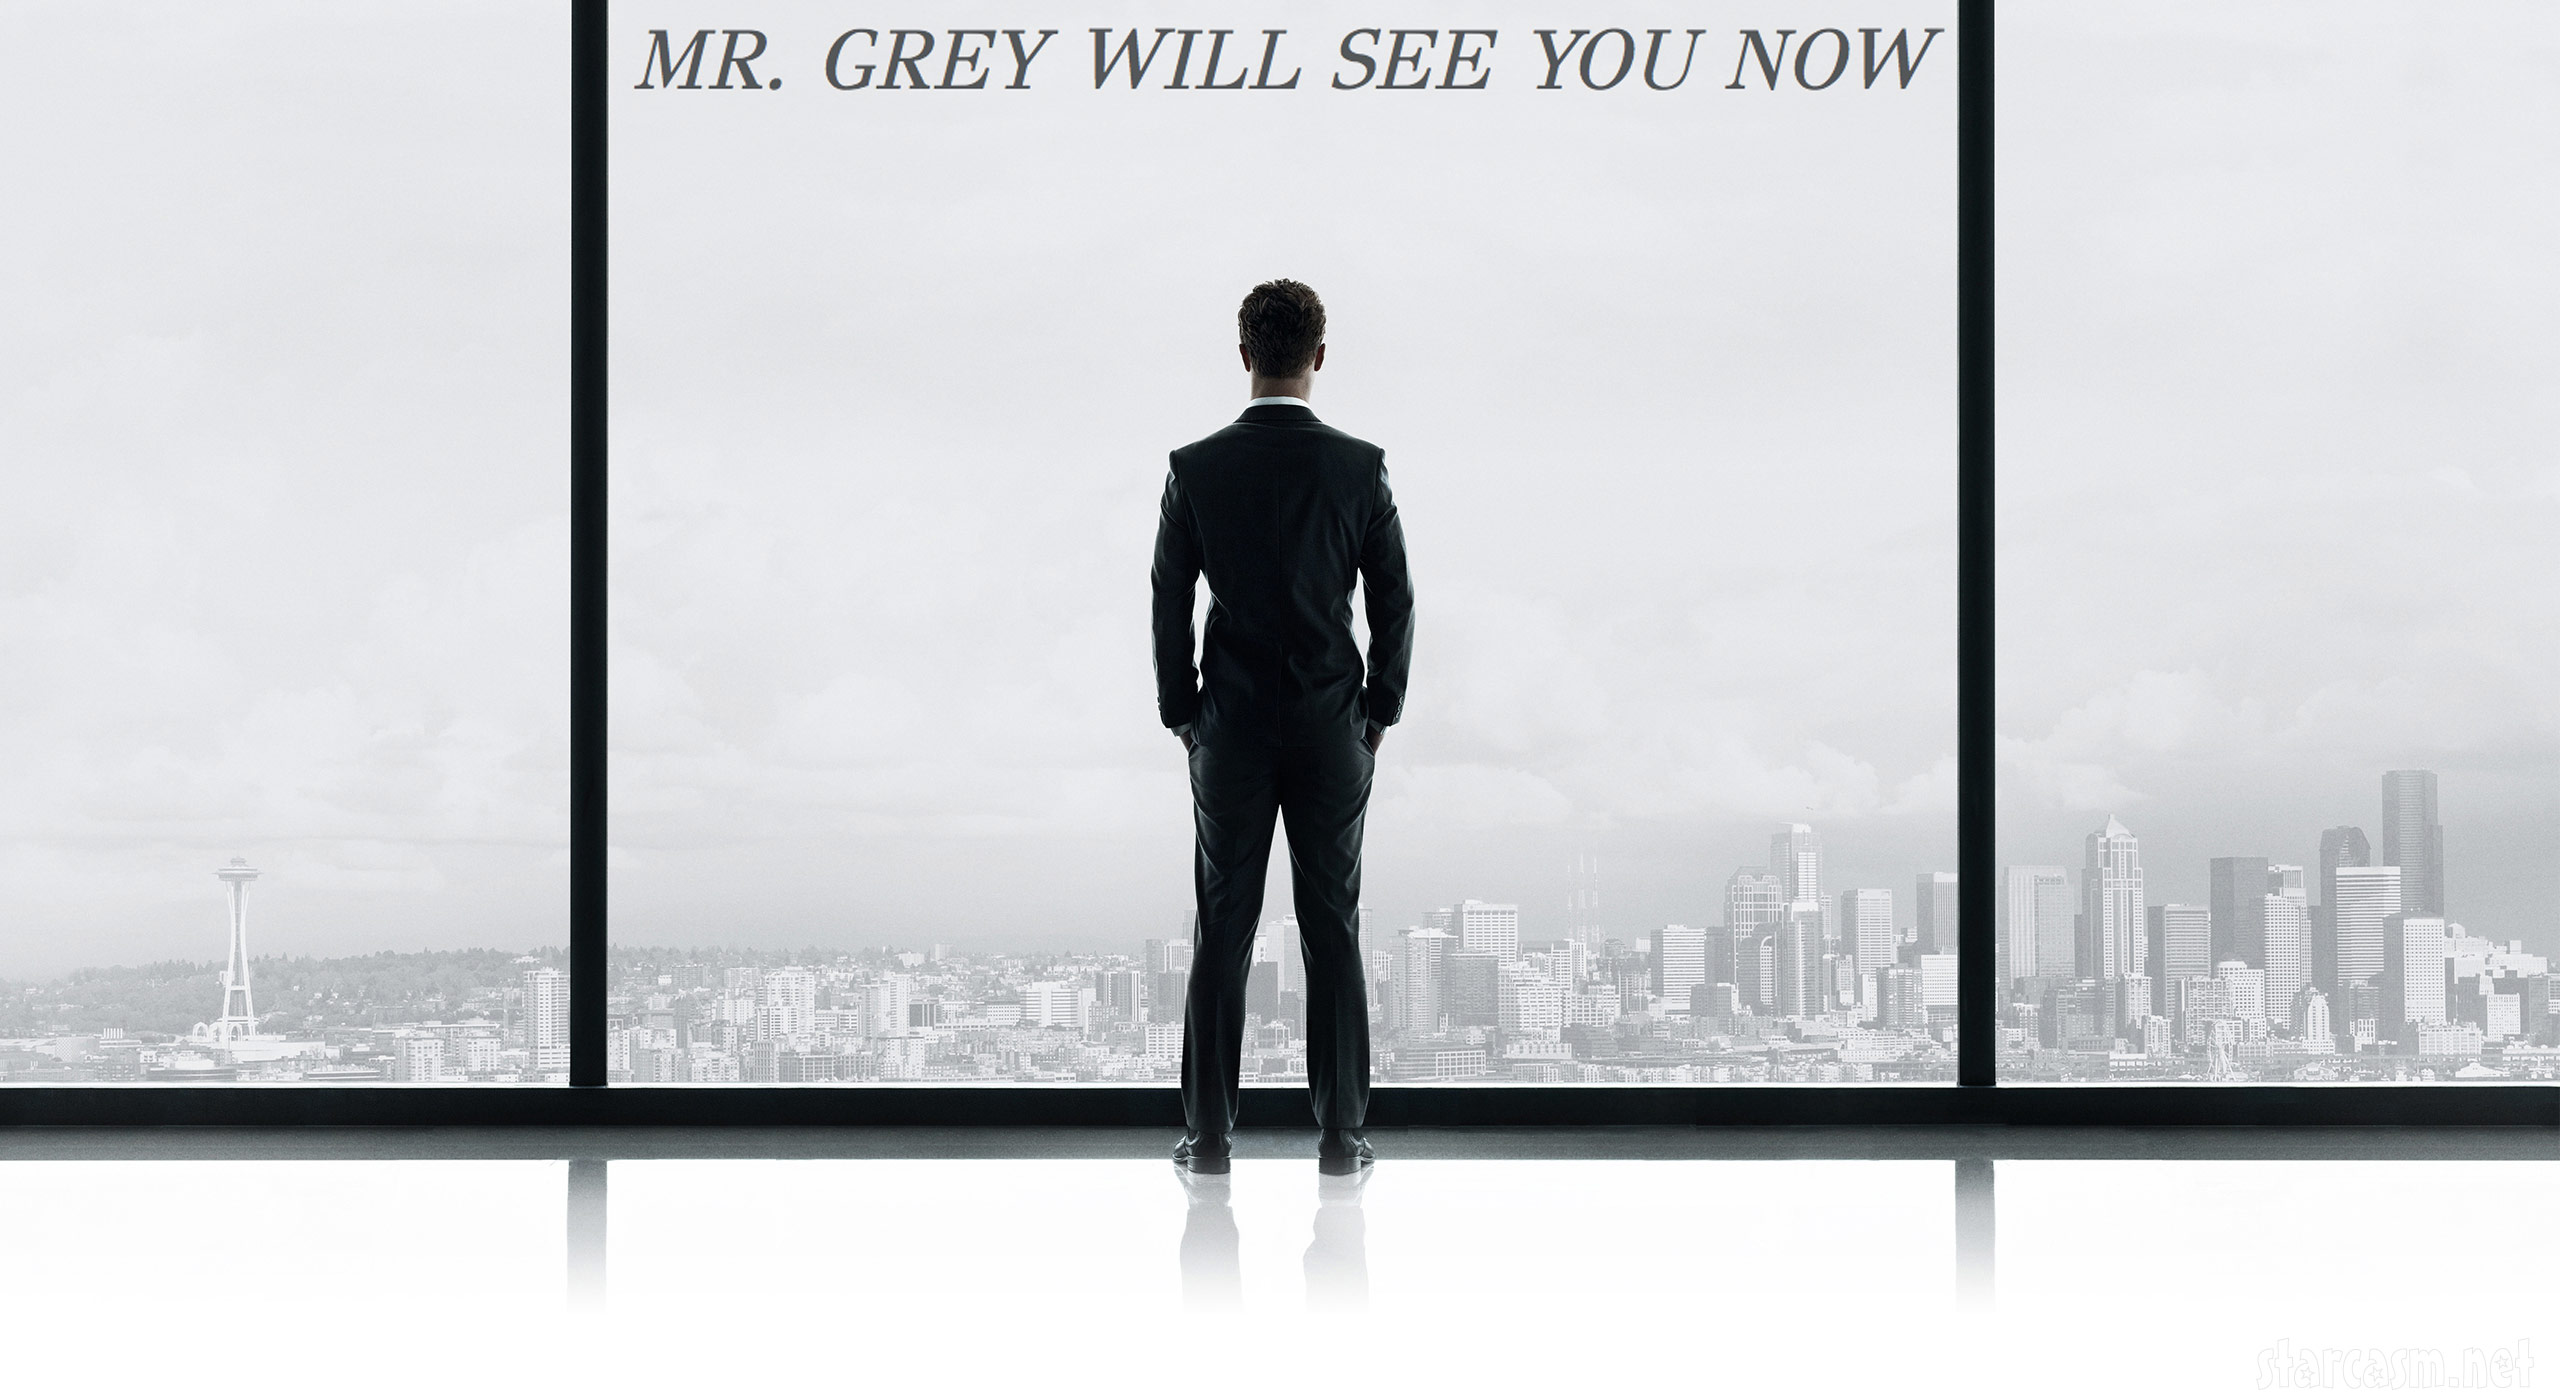 Written review fifty shades of grey 2015 trilbee reviews for Fifty shades og grey